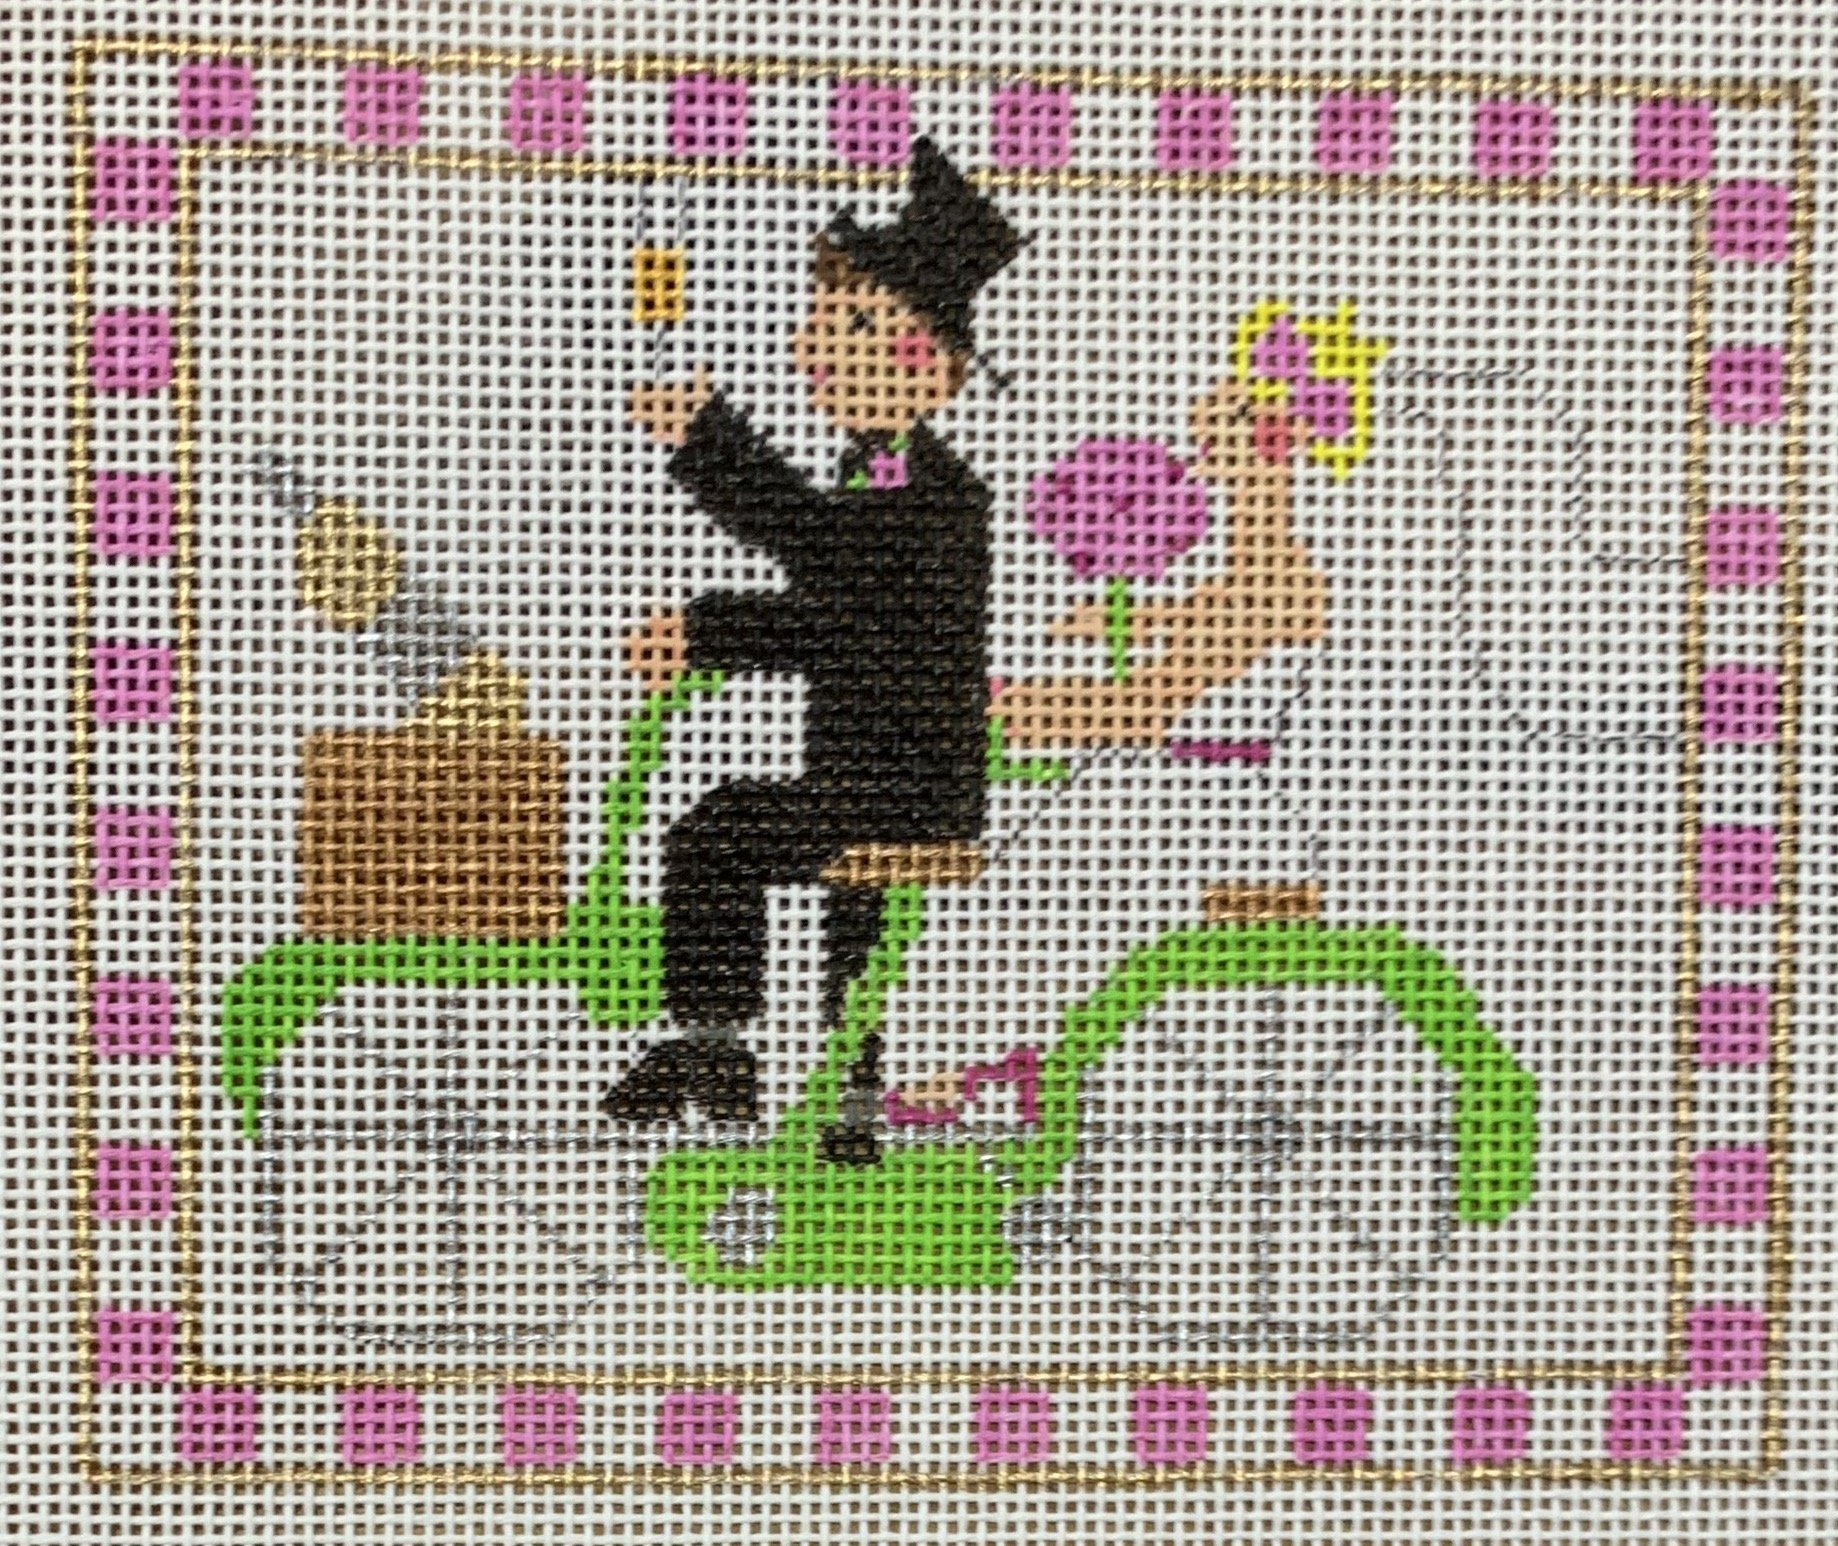 Bicycle Built for Two - Honeymoon Pair